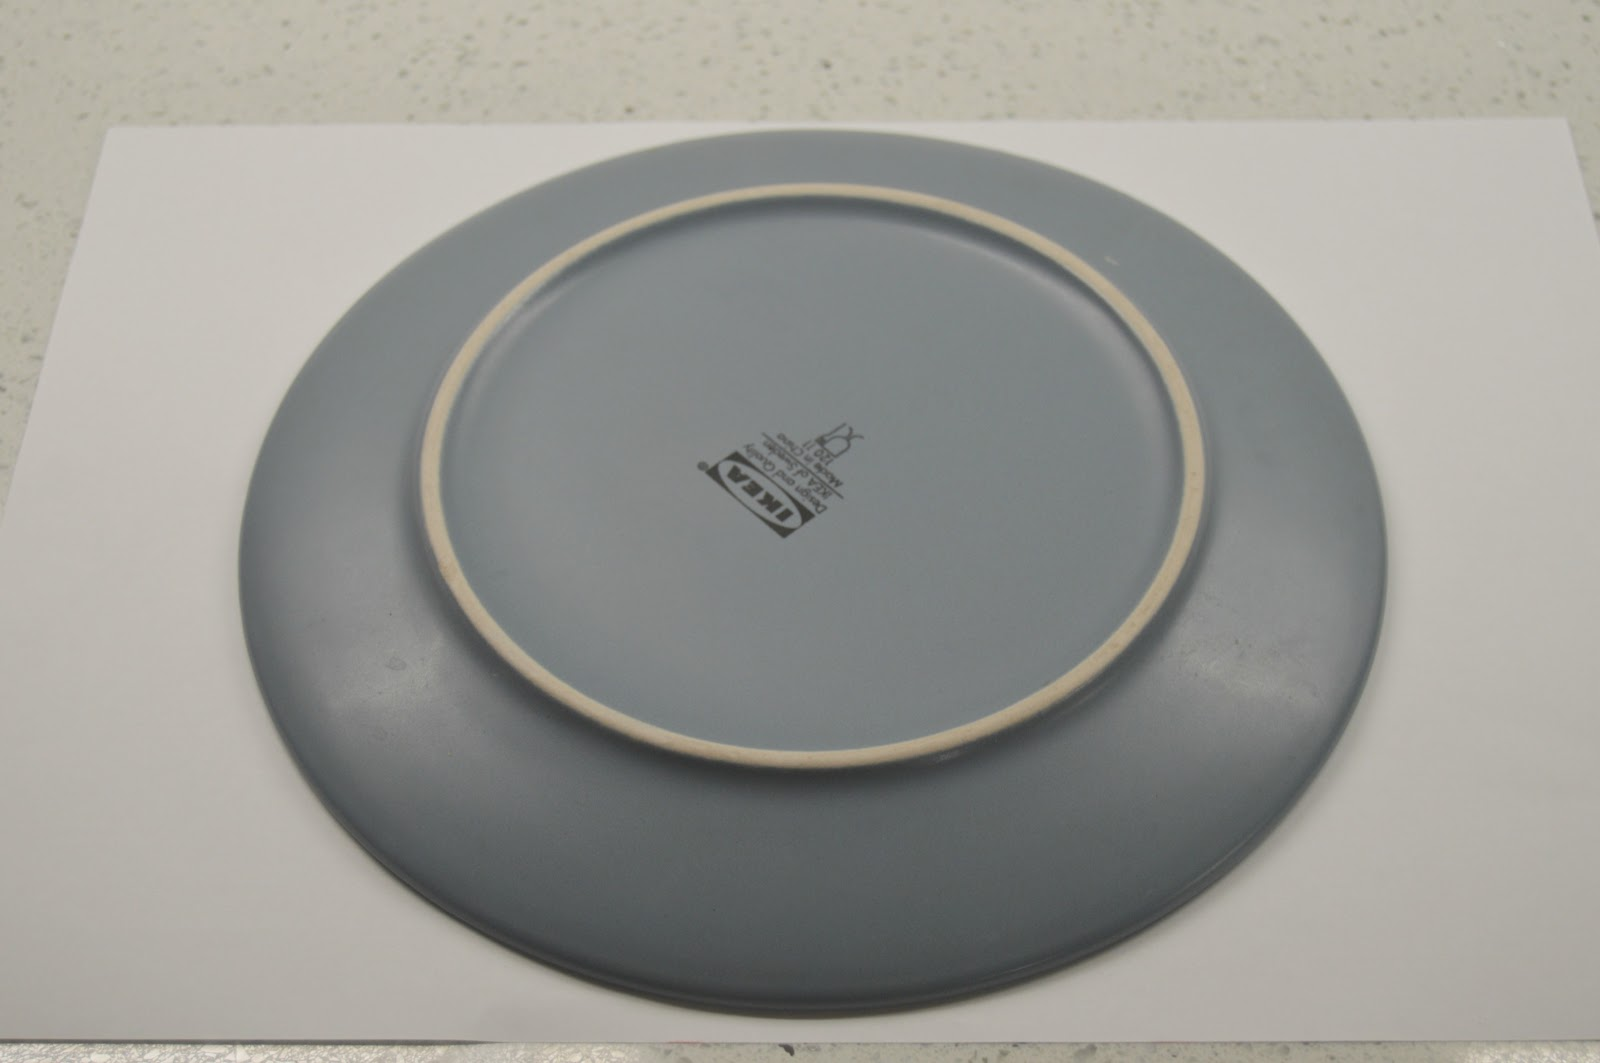 a plate upside down